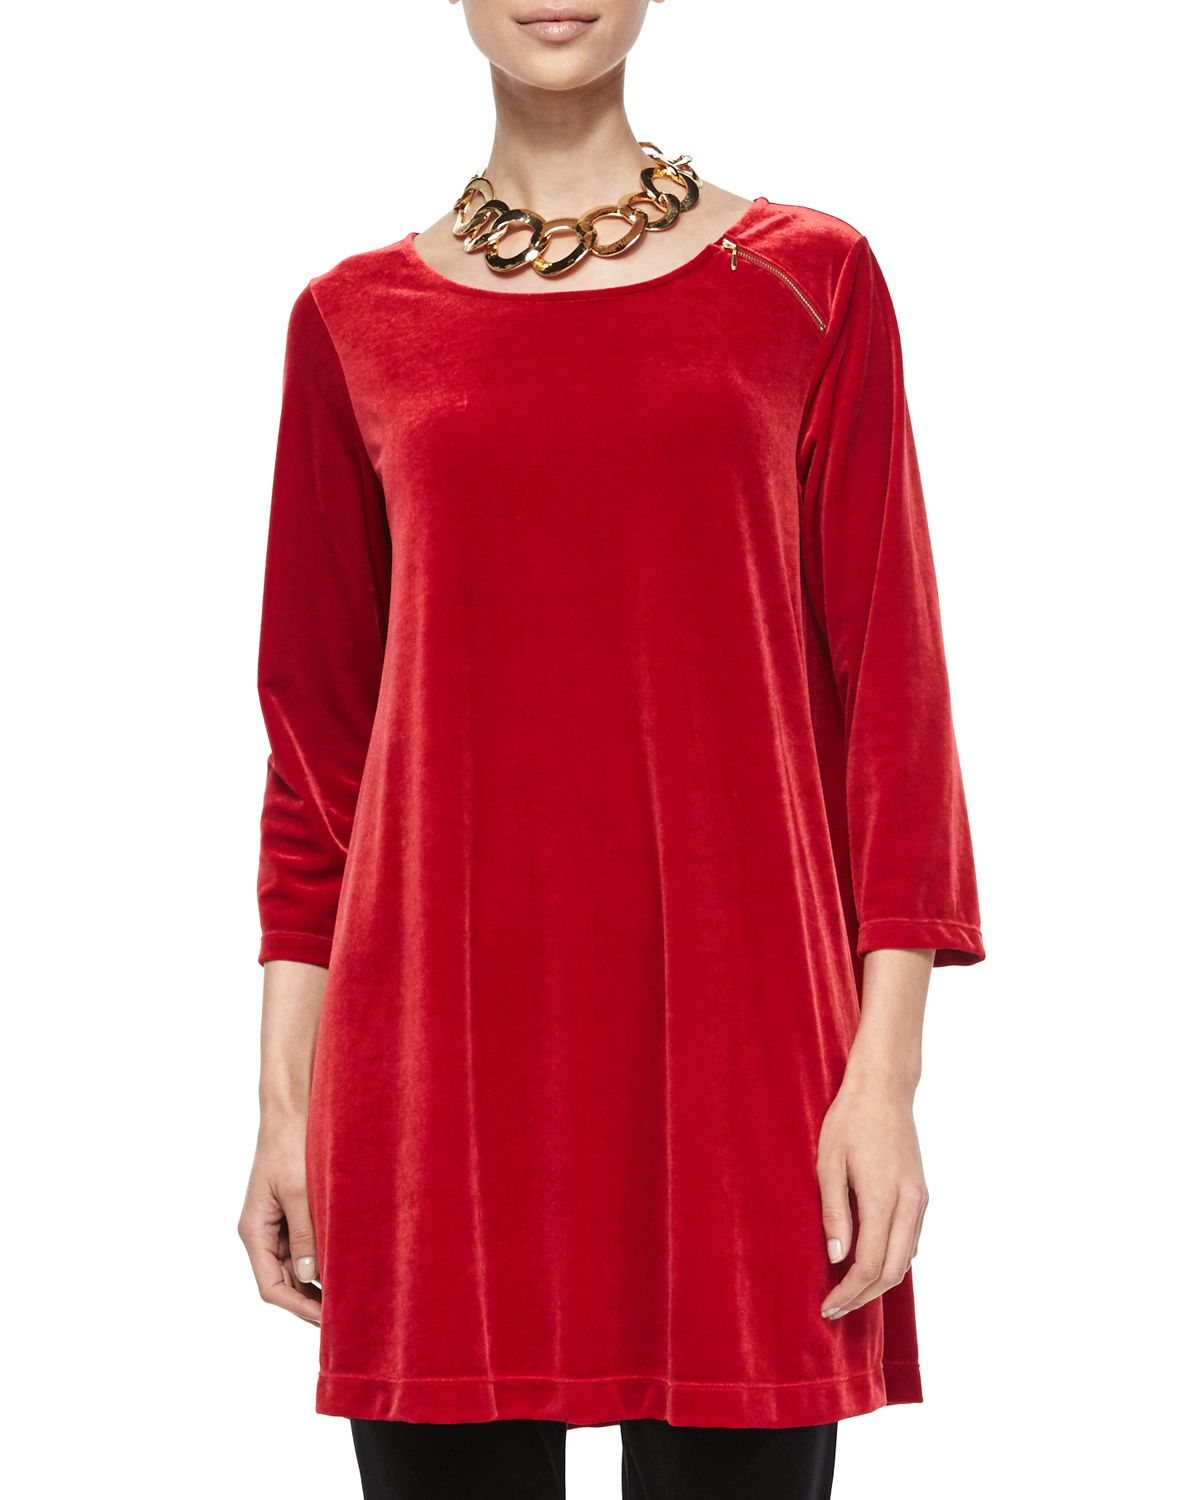 Joan Vass 3/4-sleeve Velour Tunic W/ Zipper Detail In Red